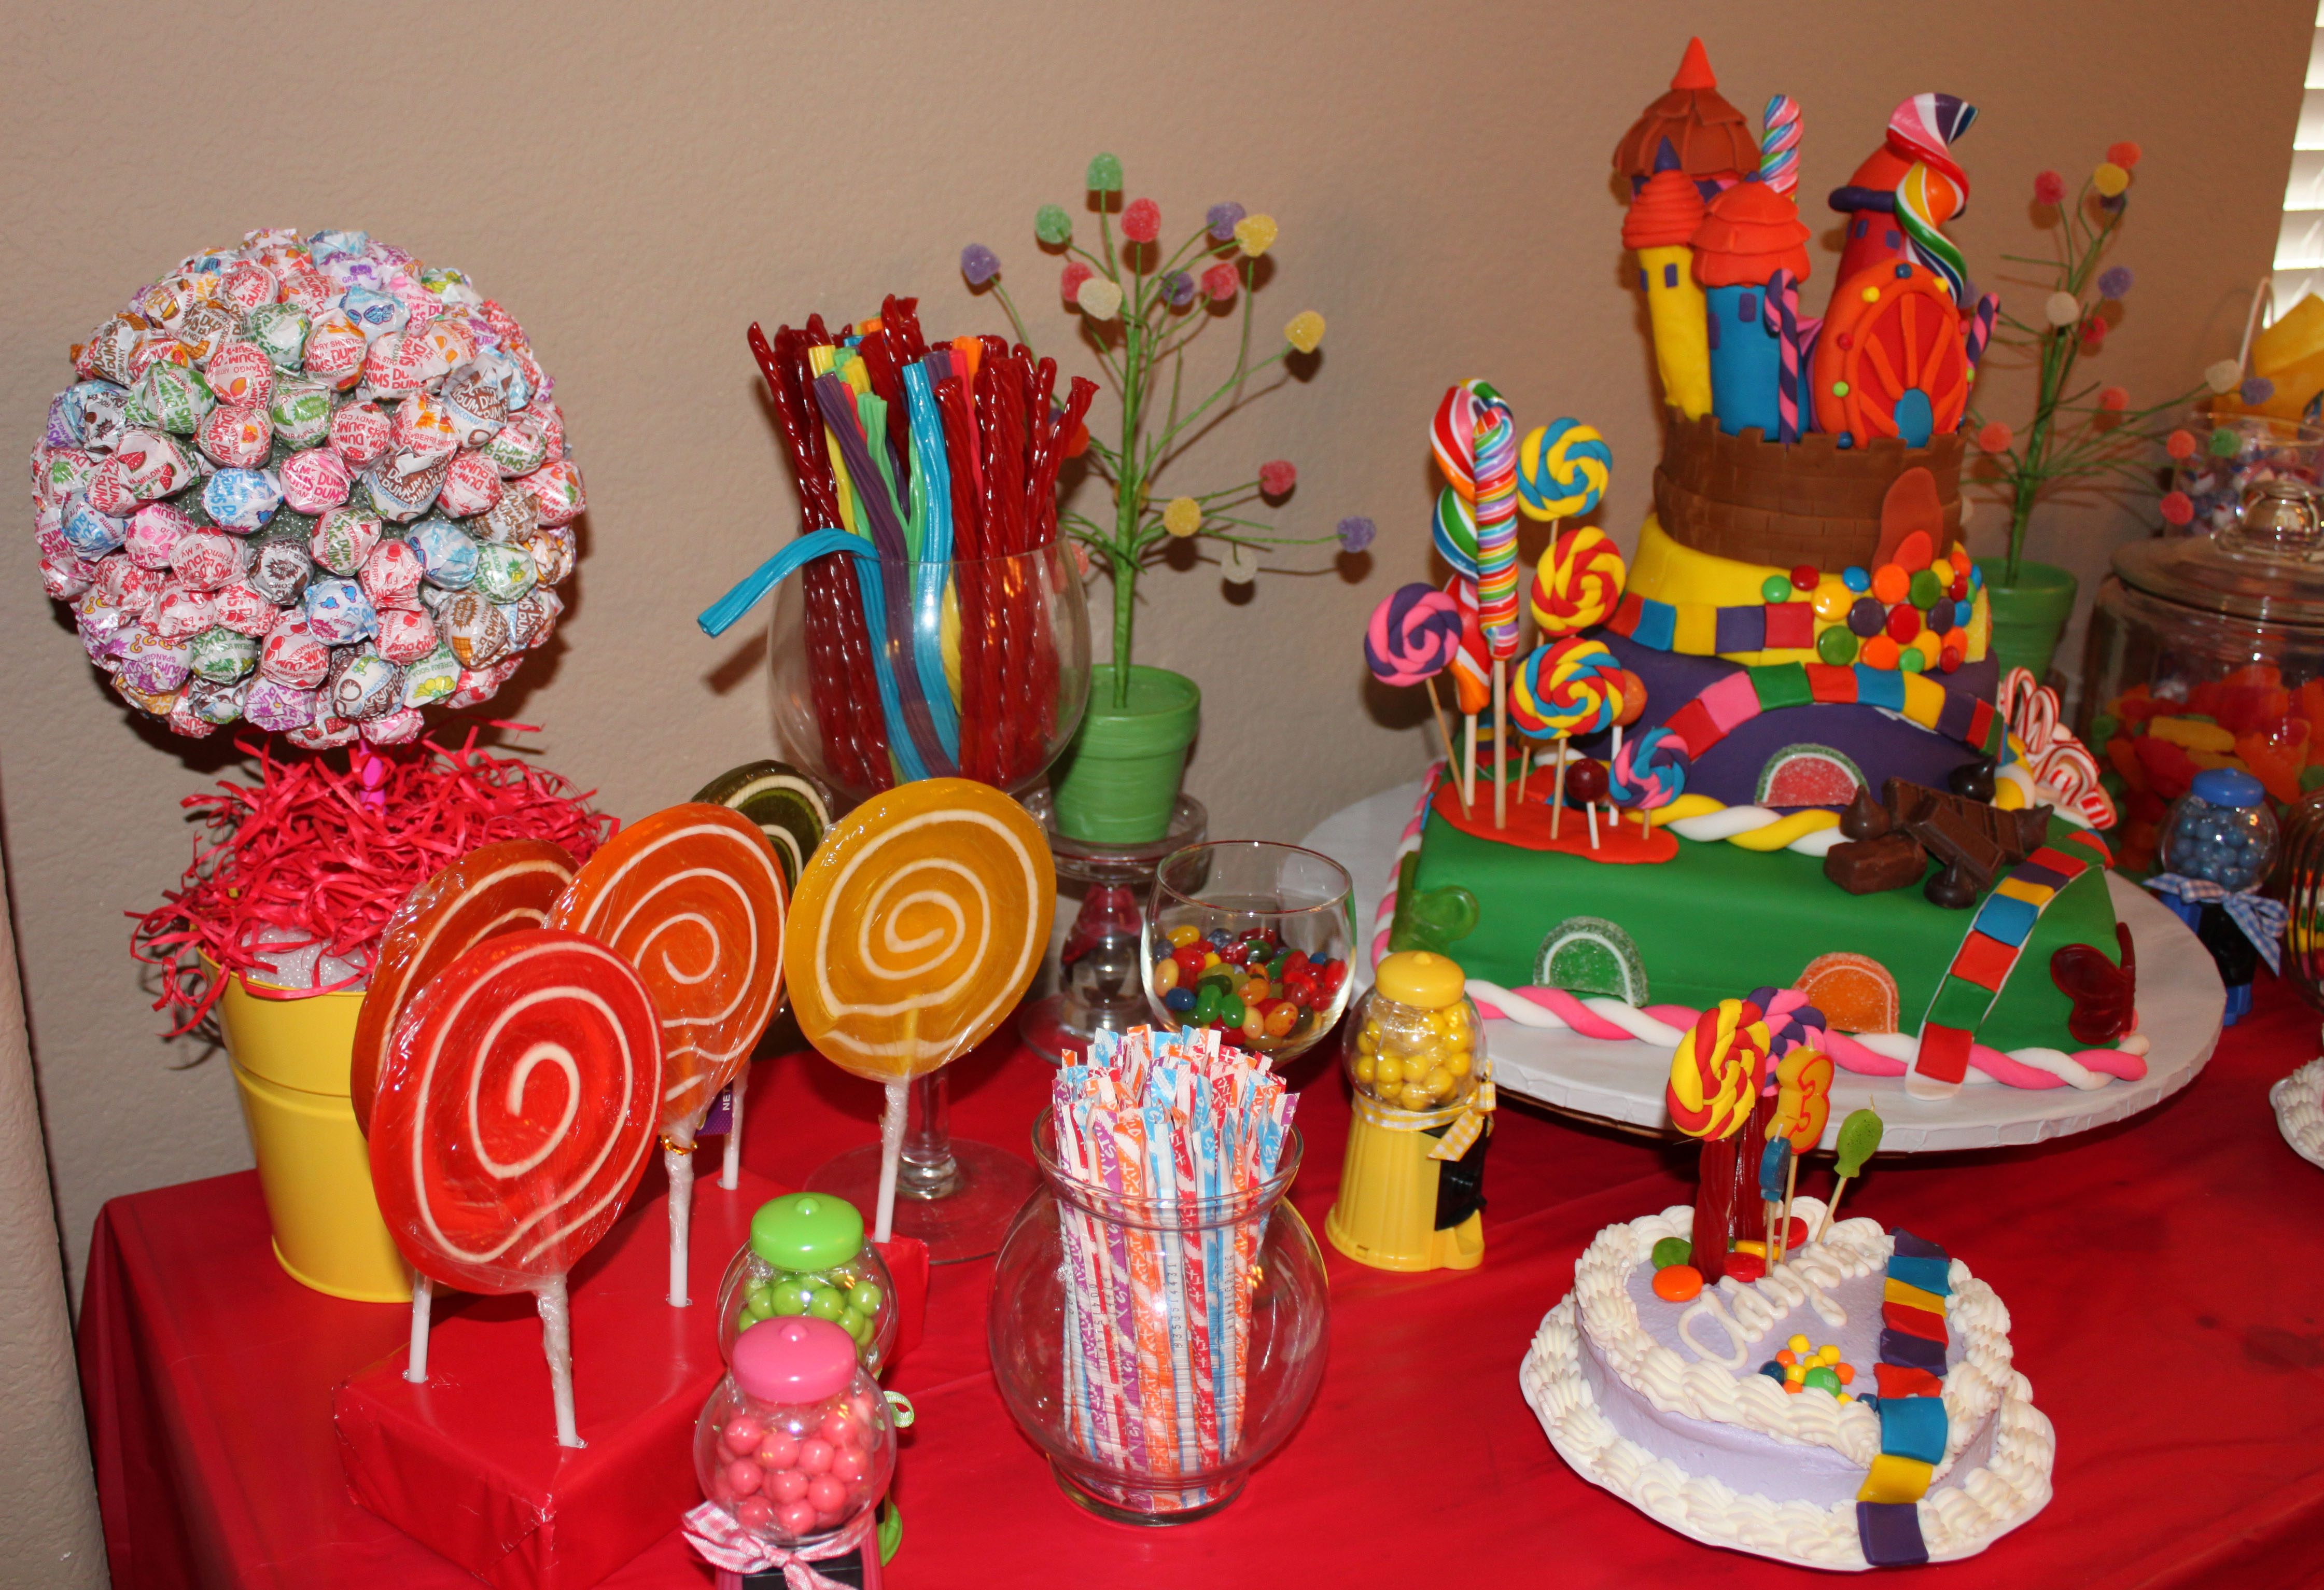 Here is the candy table set up with the cake and the favor bags.